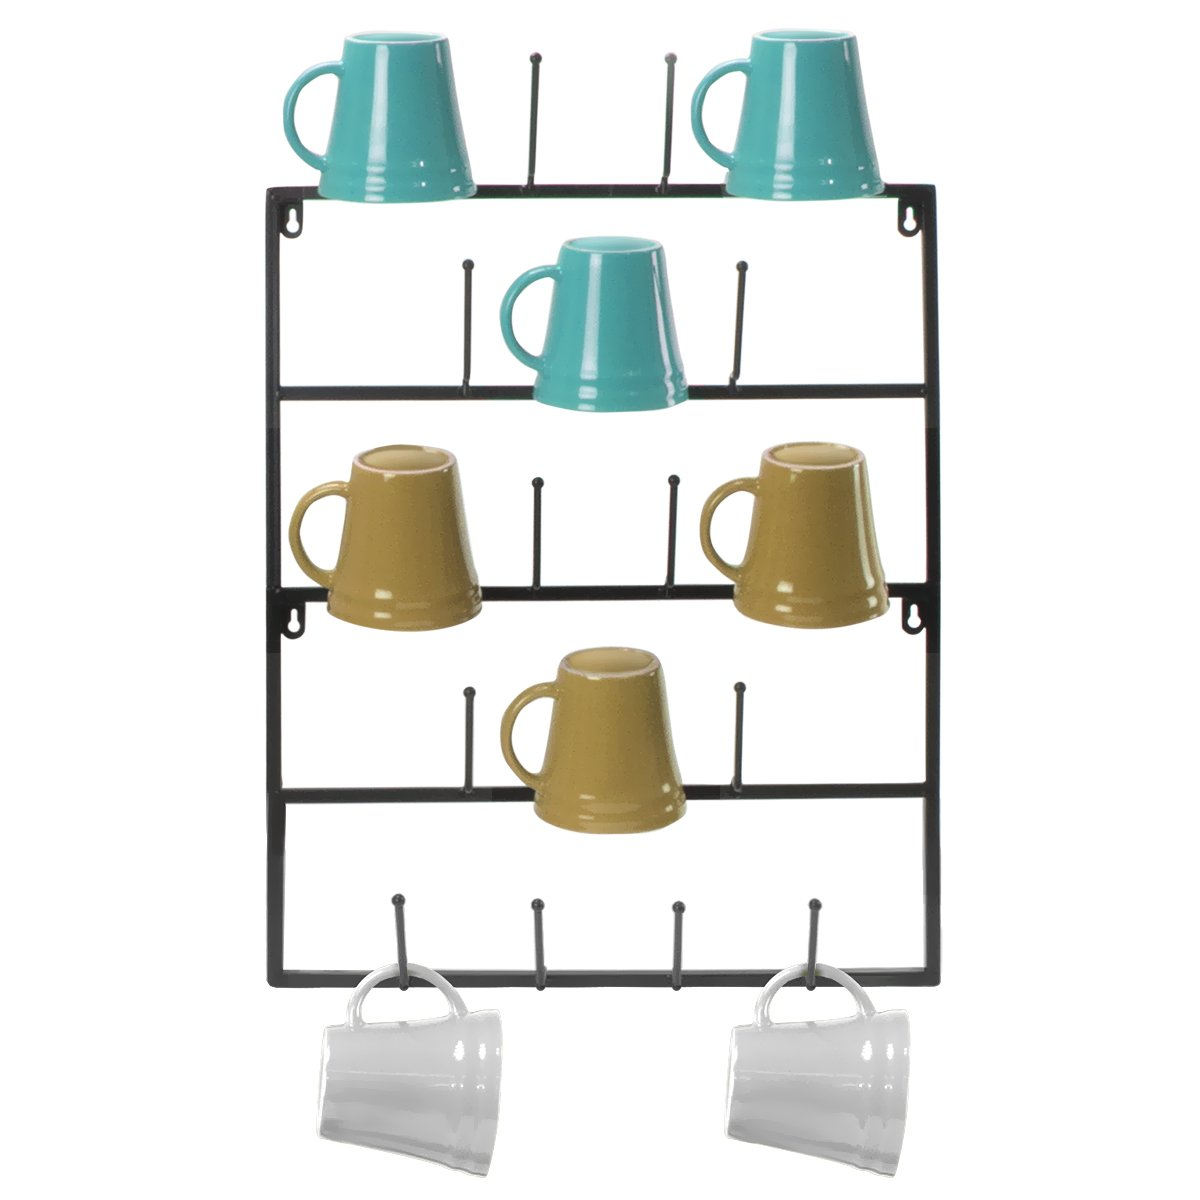 Sorbus Mug Rack Cup Holder - Wall Mounted Home Storage Mug Hooks with 5-Tier Display Organizer for Coffee Mugs, Tea Cups, Mason Jars, and More - Holds 18 Mugs - Black Metal by Sorbus